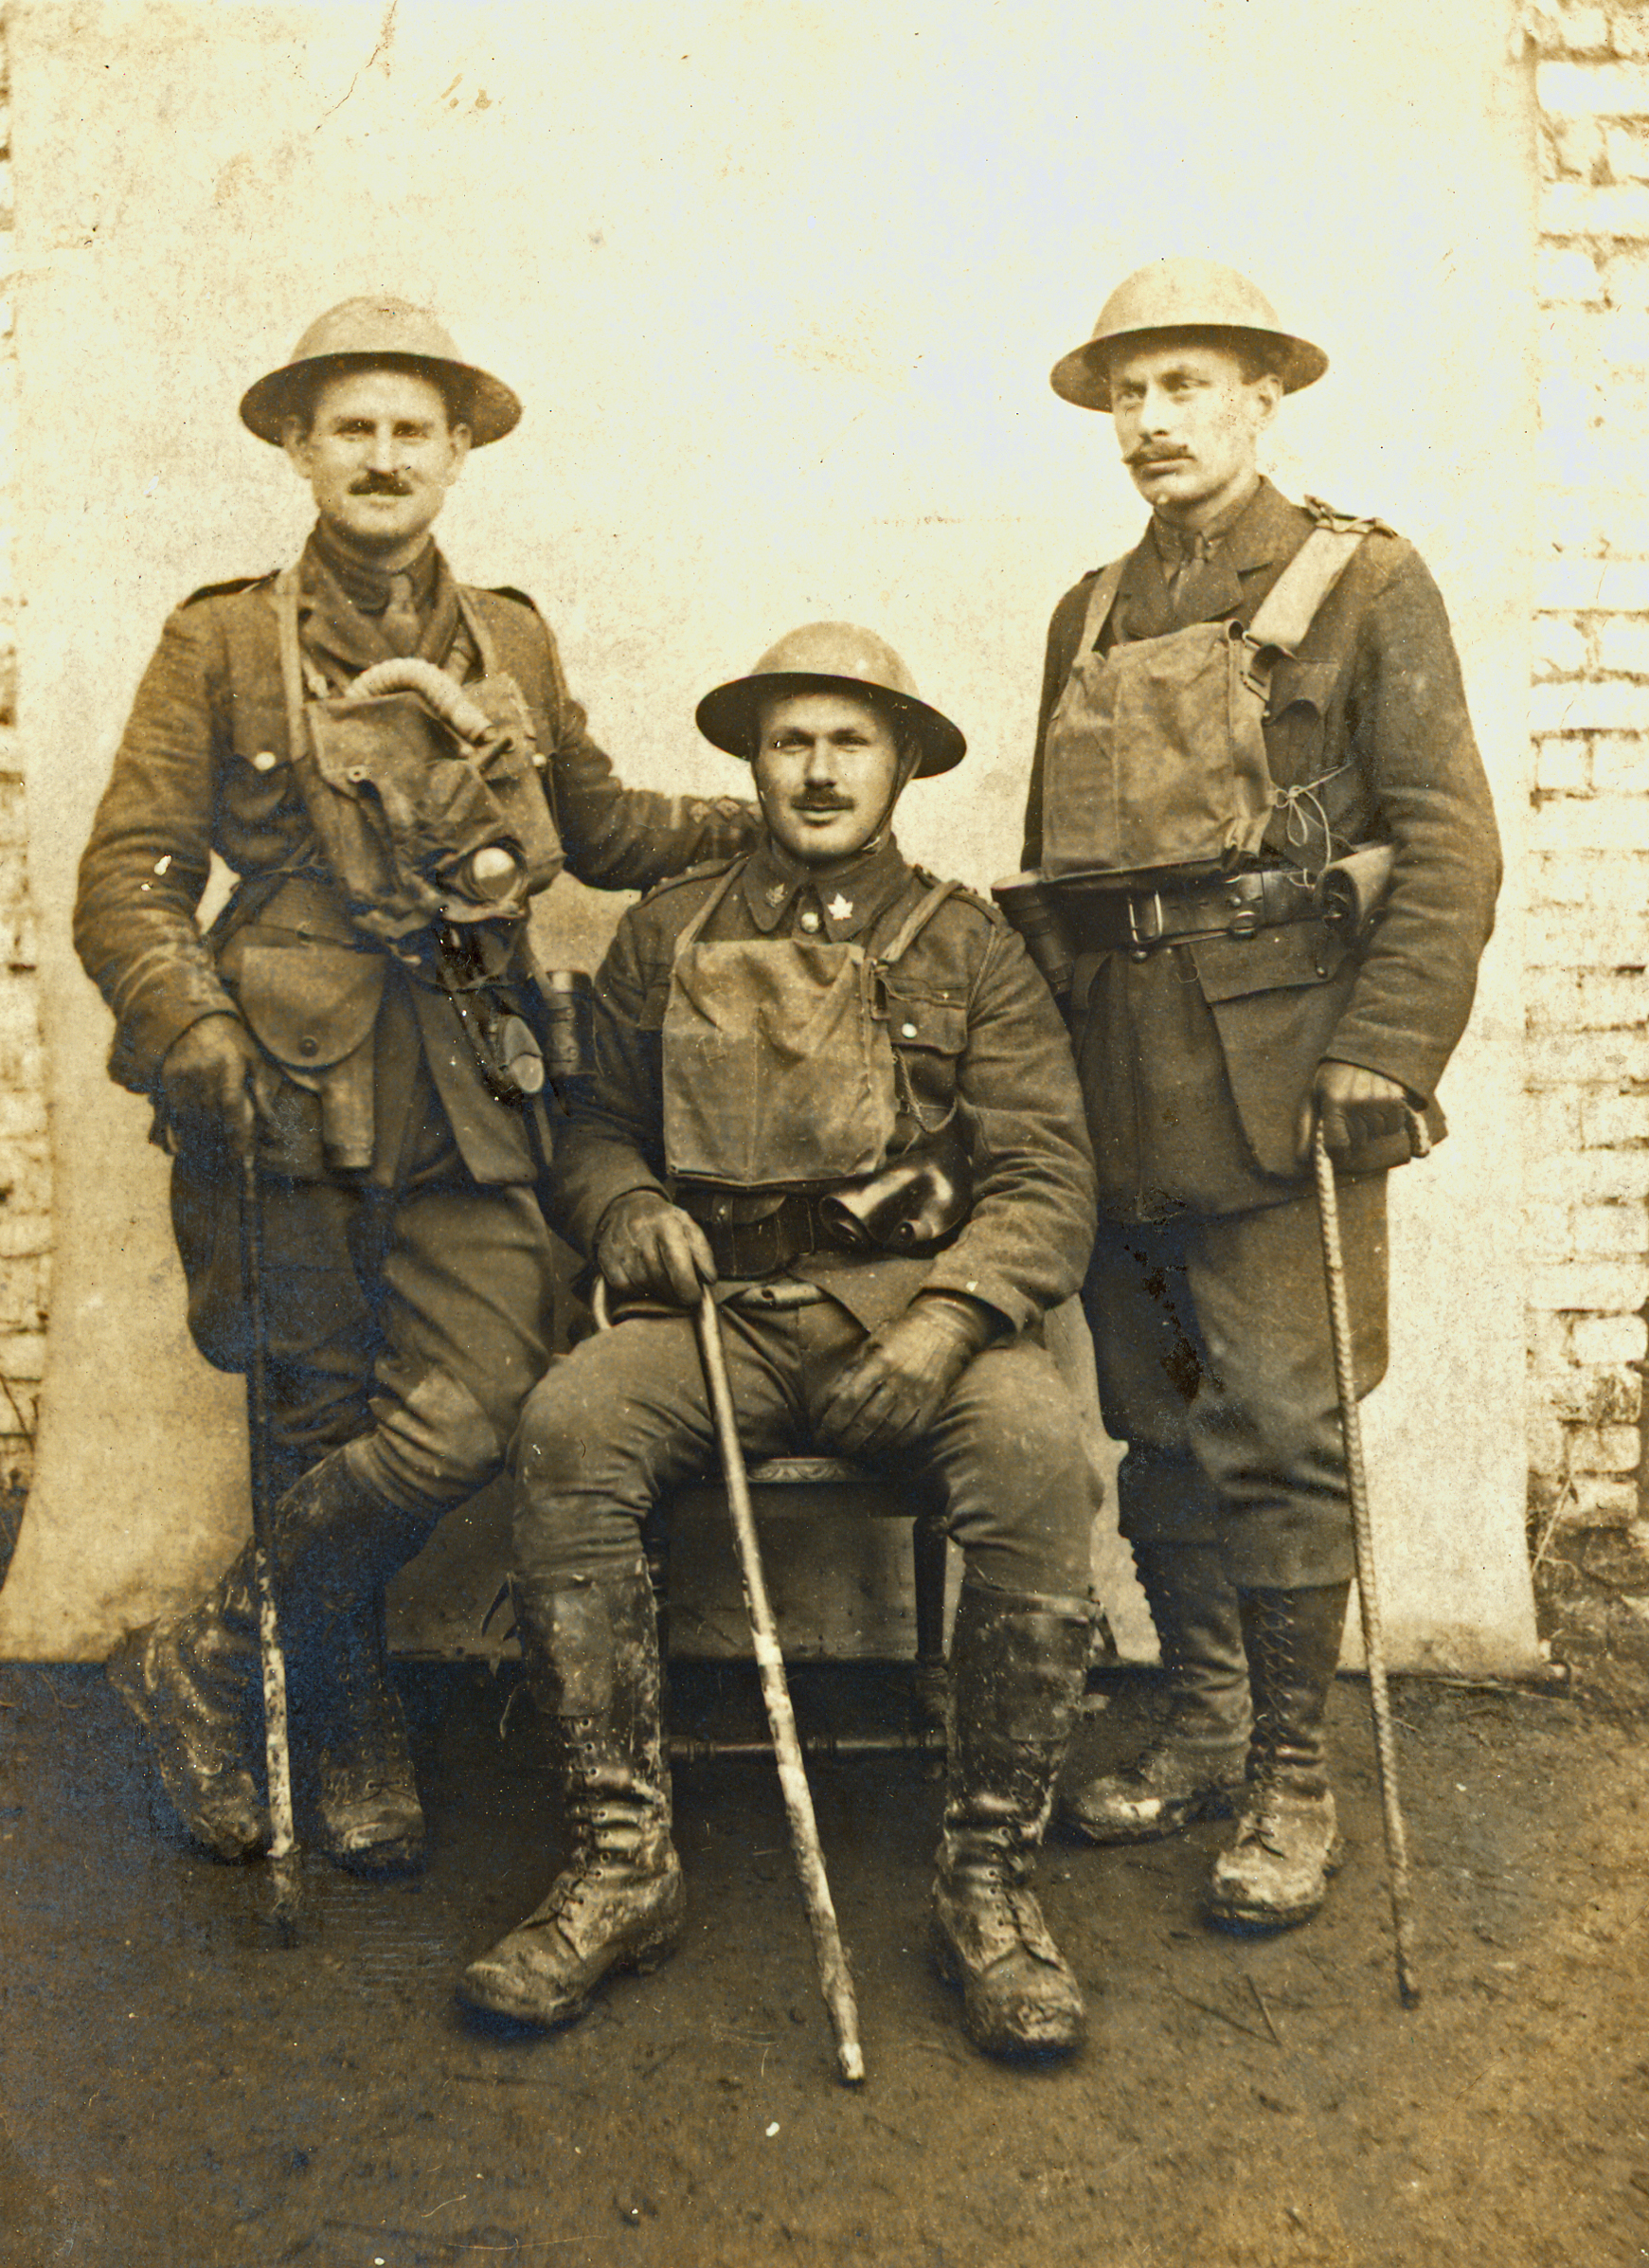 Members of the fourth Canadian Mounted Rifles